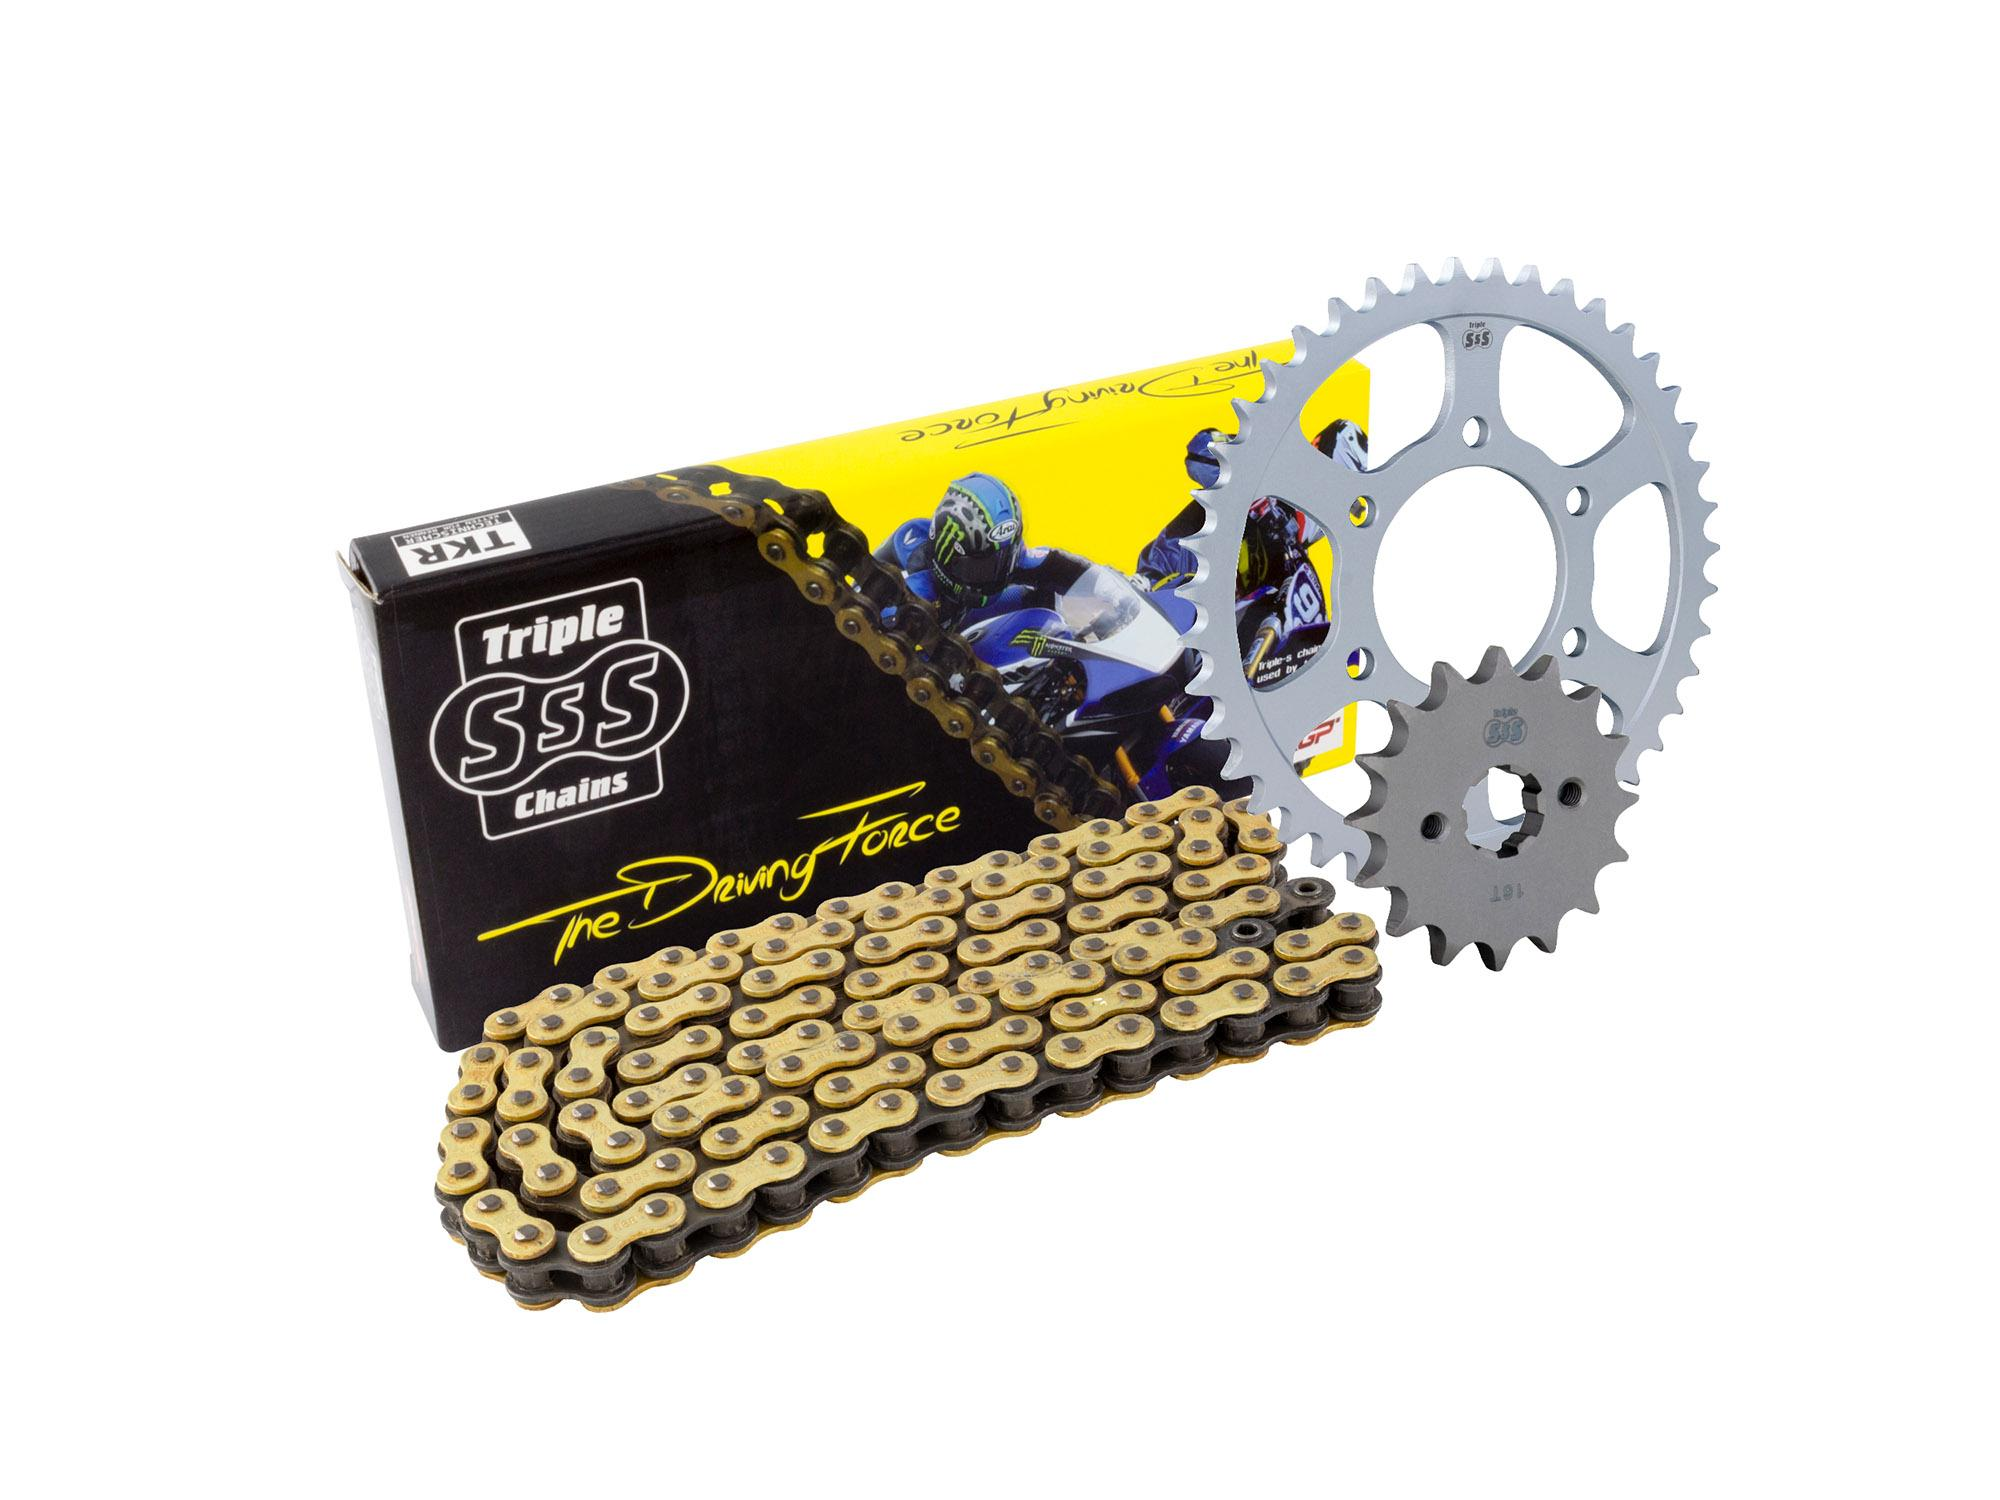 Kawasaki VN800 C1-E6F Drifter 99-06 Chain & Sprocket Kit: 17T Front, 40T Rear, HD O-Ring Gold Chain 530H 112Link